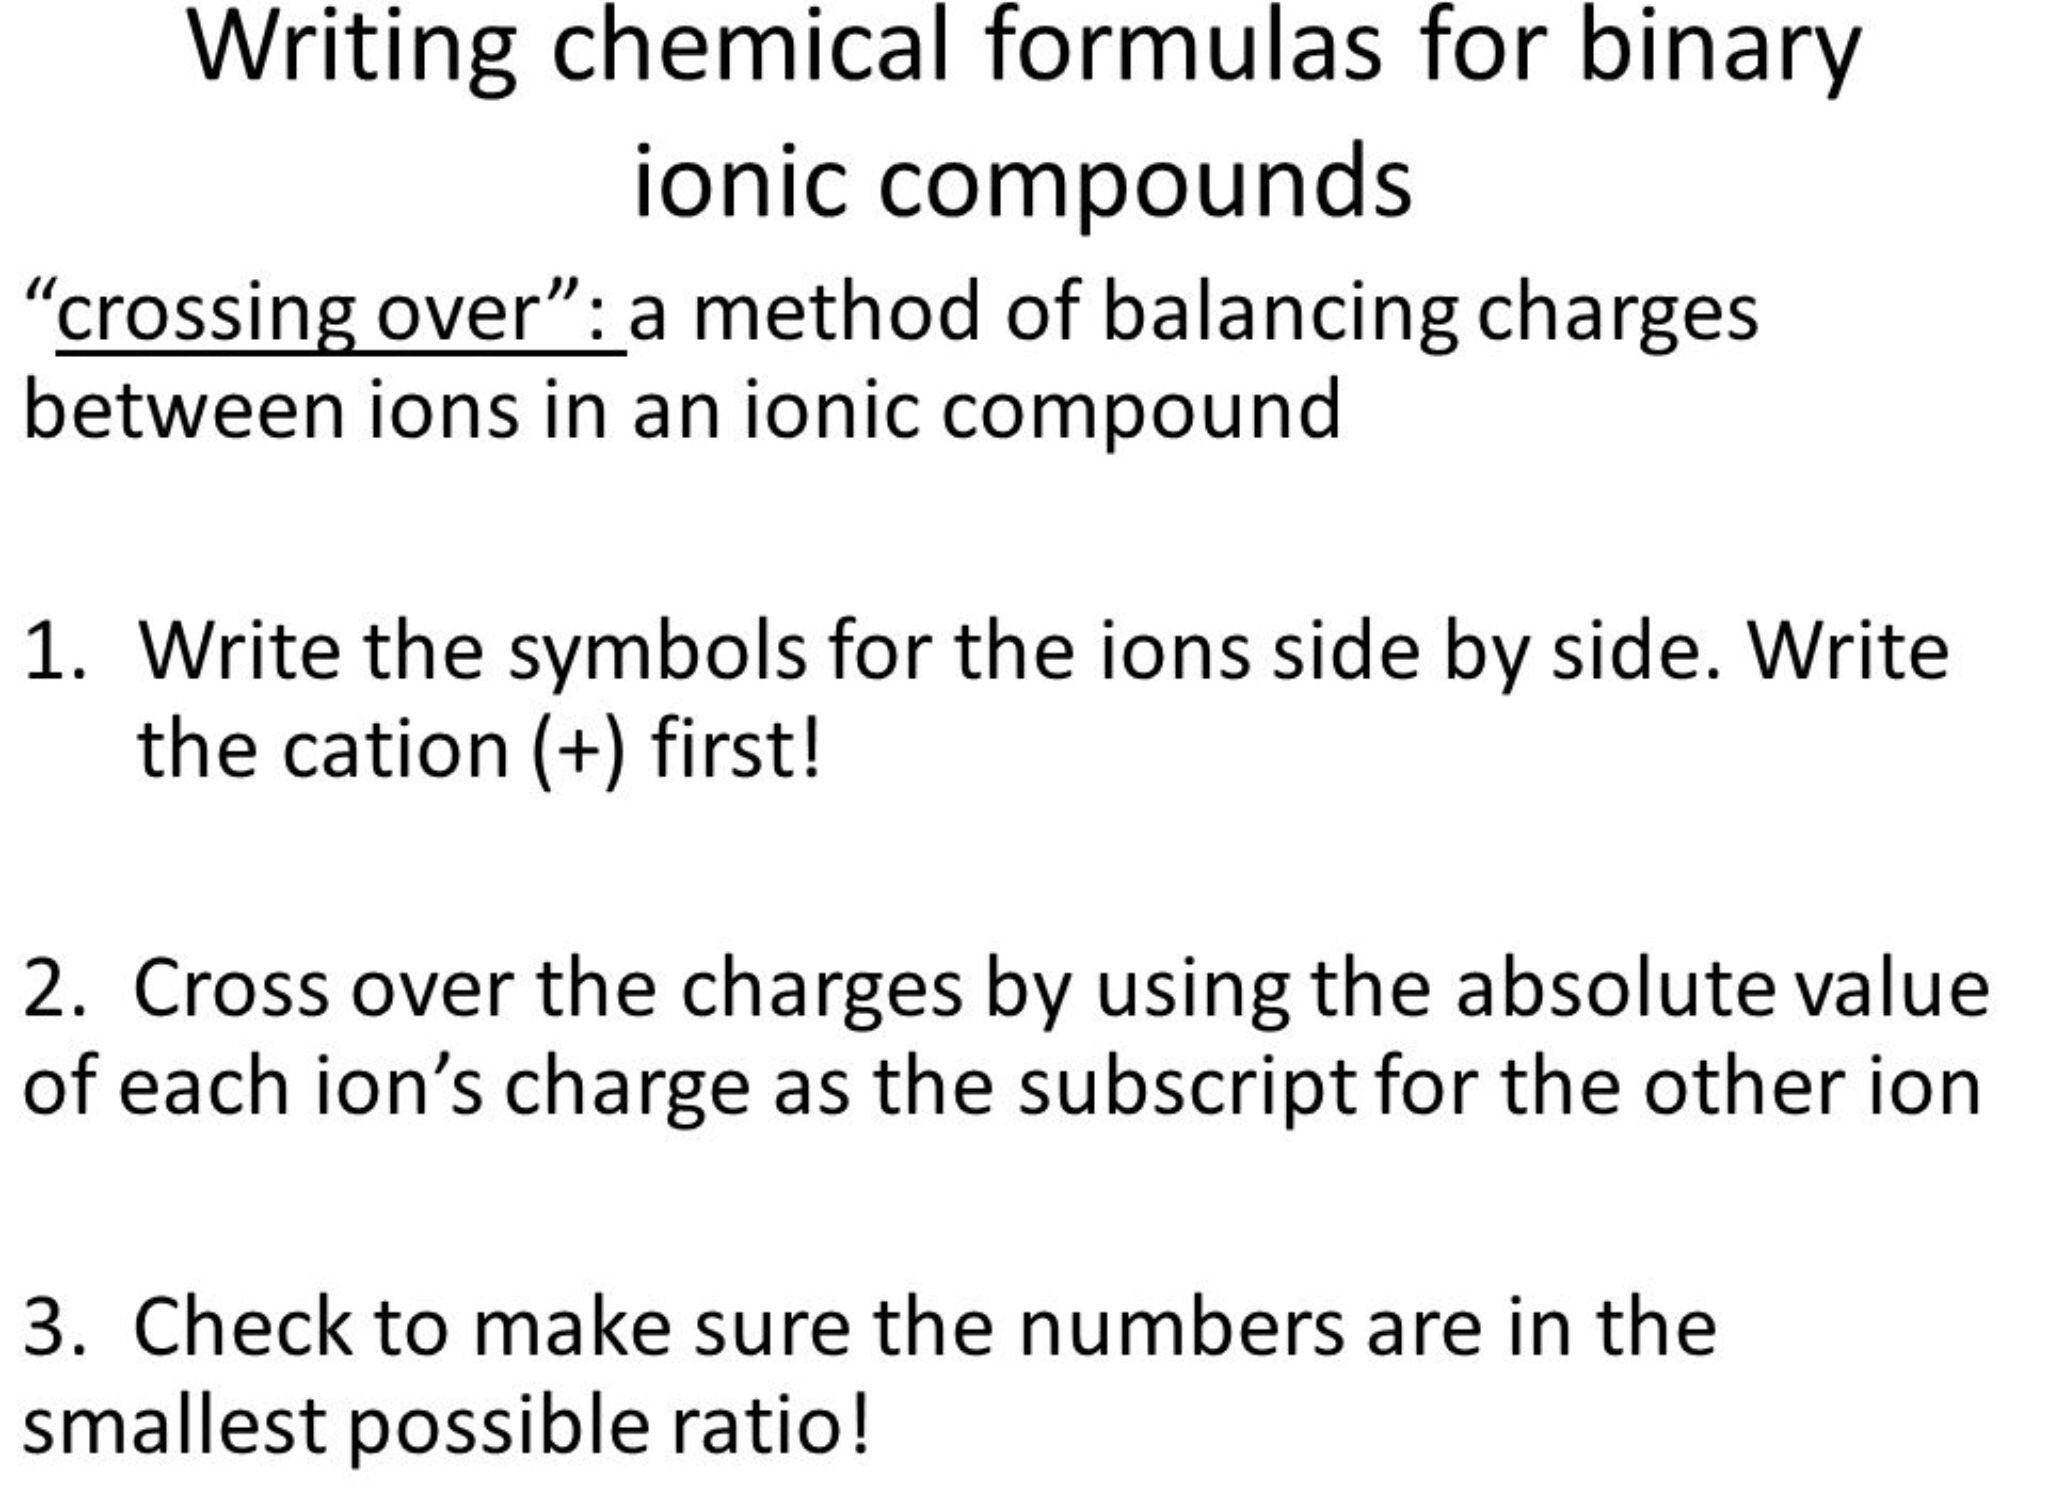 worksheet Solubility Rules Worksheet rules for ionic compounds slide november 17 2017 snc1d chemistry atoms elements and fall pinterest i